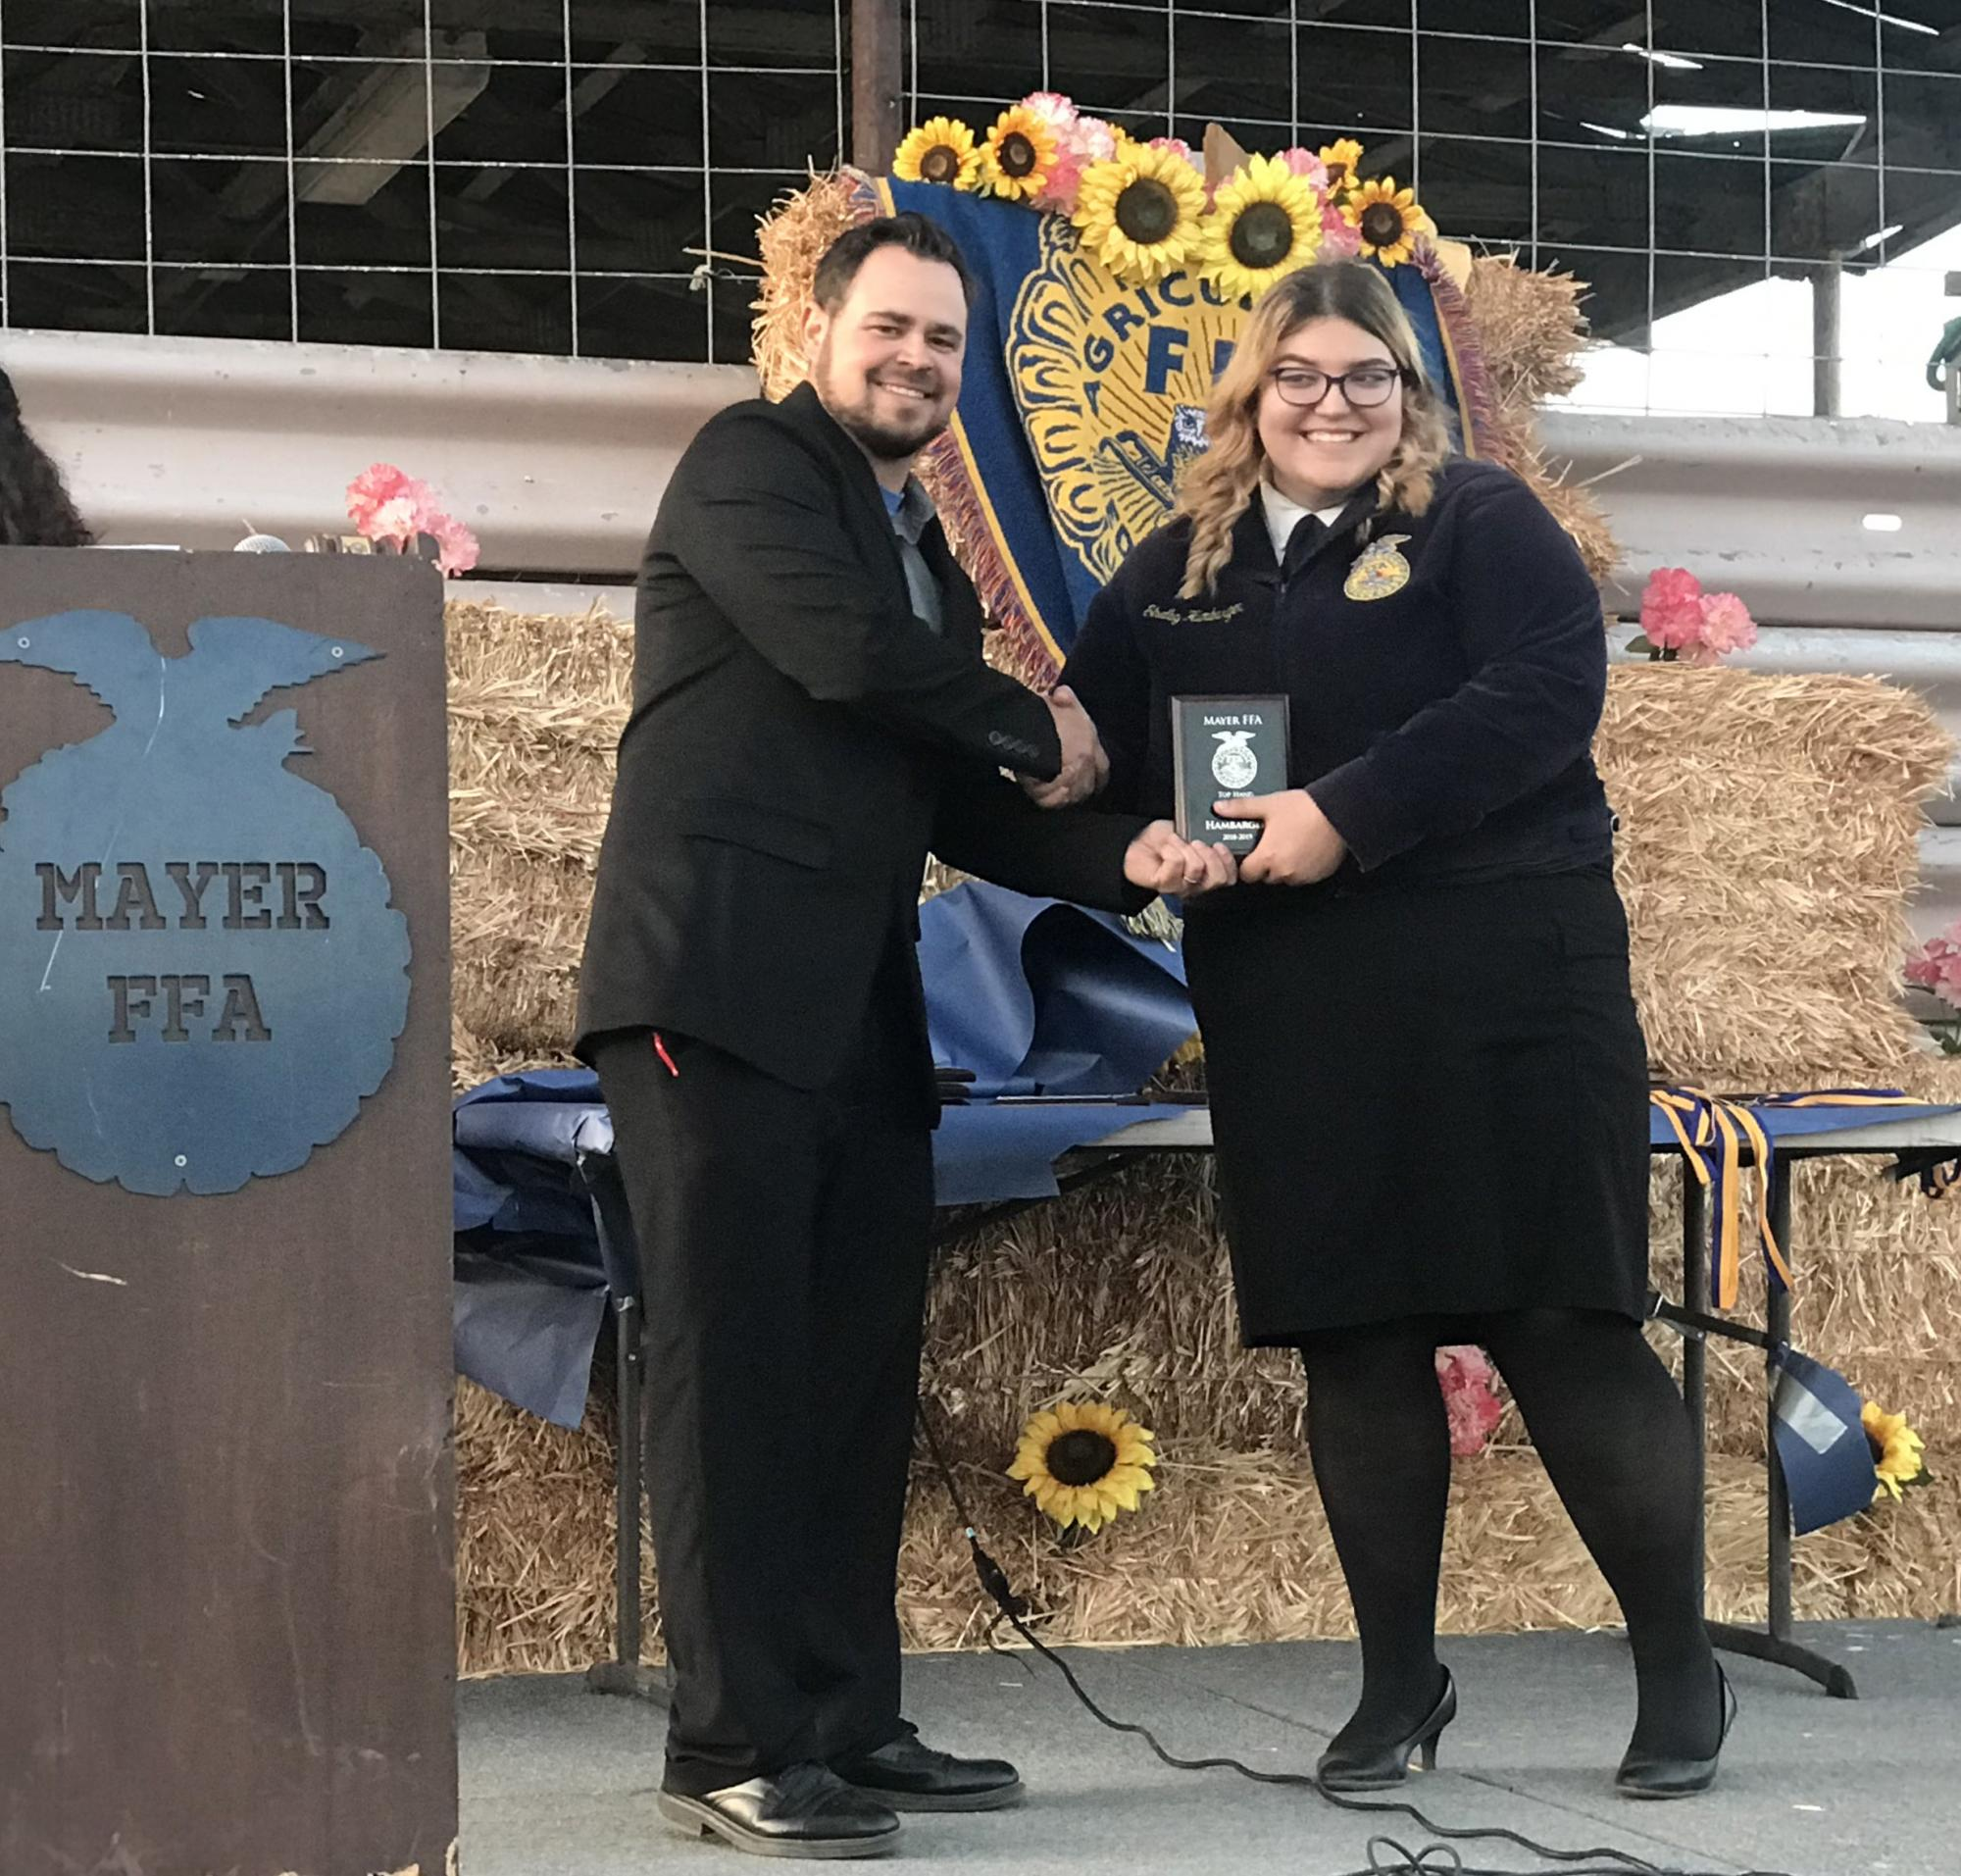 At the urging of FFA academic advisor Jeff Dinges , Humbarger  applied for and received several scholarships and grants, including the Mary Kidder Rak Scholarship, available to students in the College of Agriculture and Life Sciences at the UA.